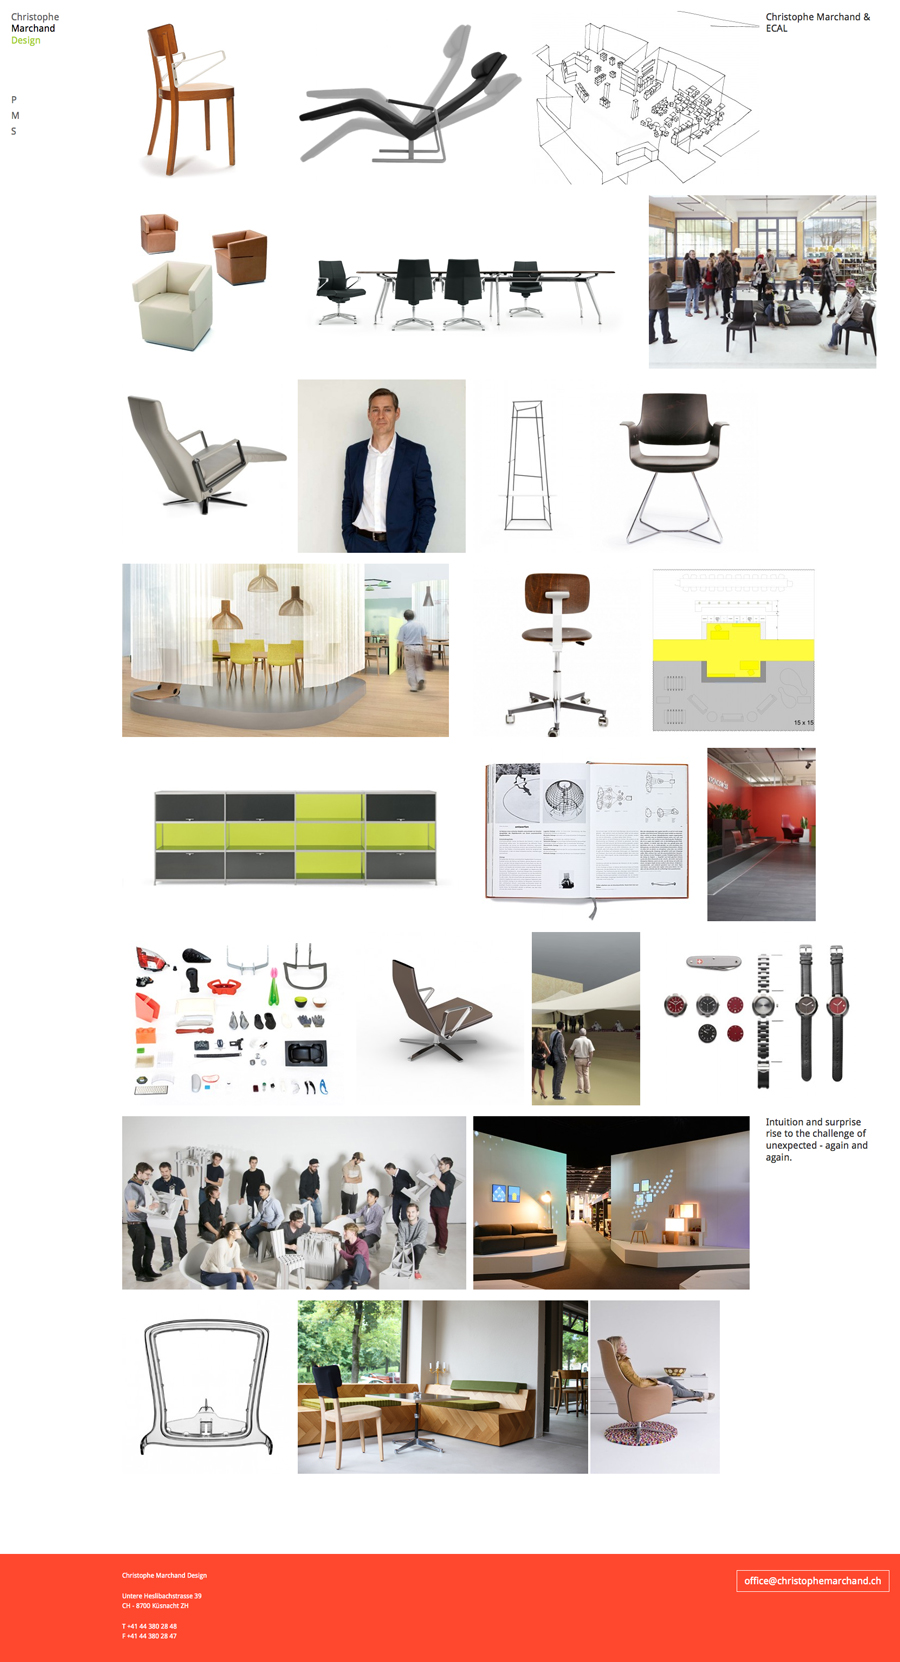 Christophe marchand about blank design office for Product design agency